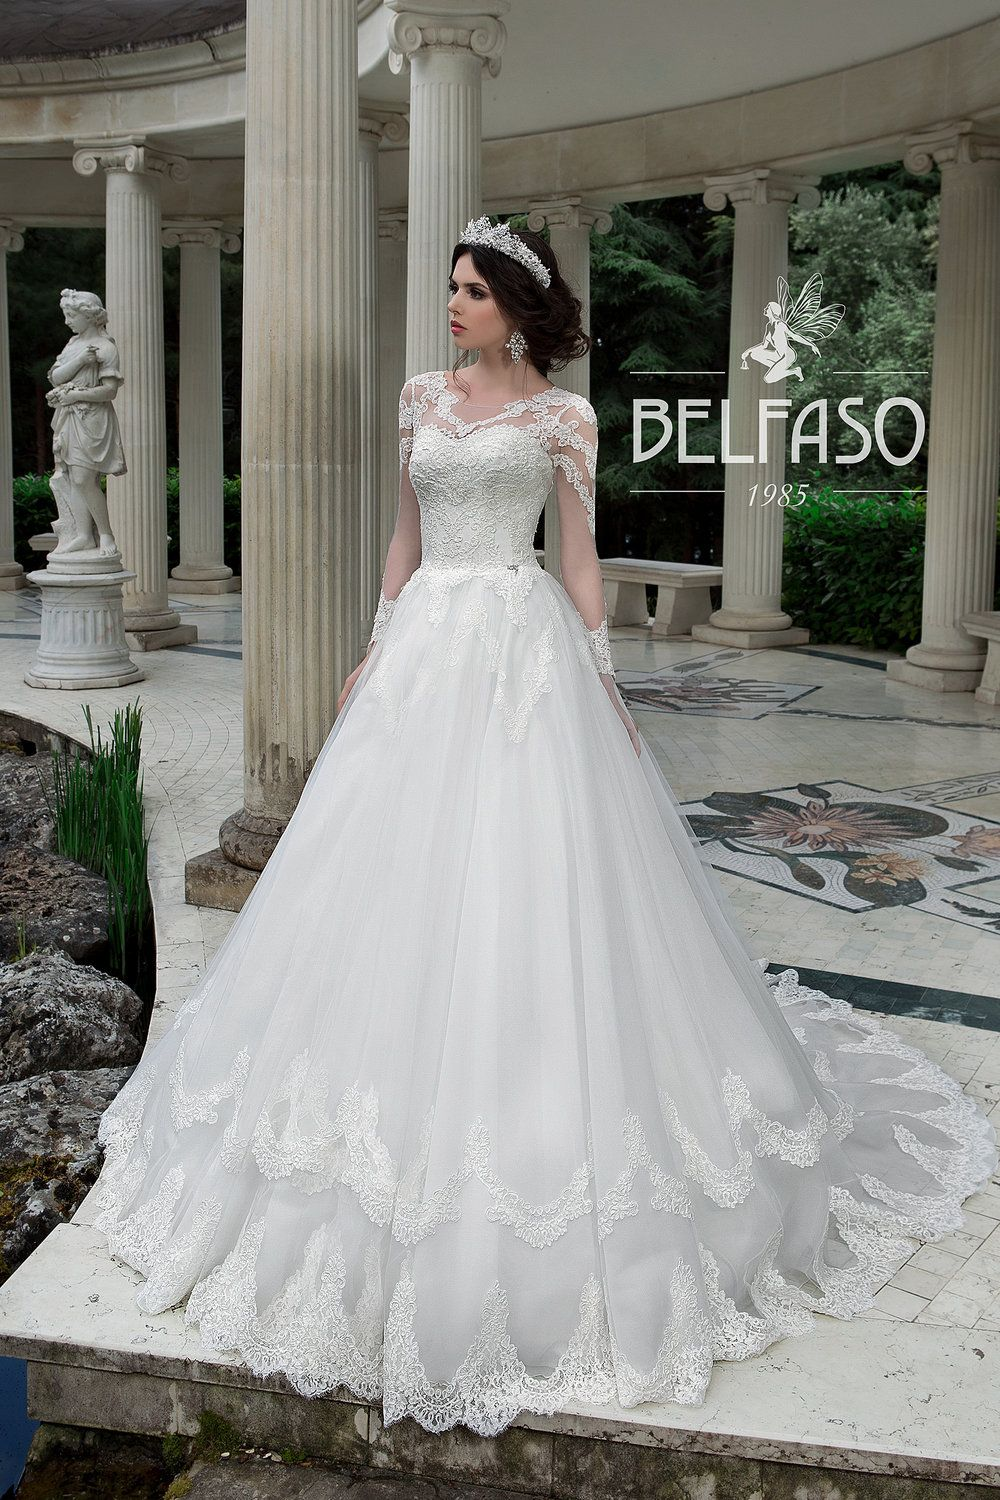 Sabira wedding dress by belfaso wedding dresses in